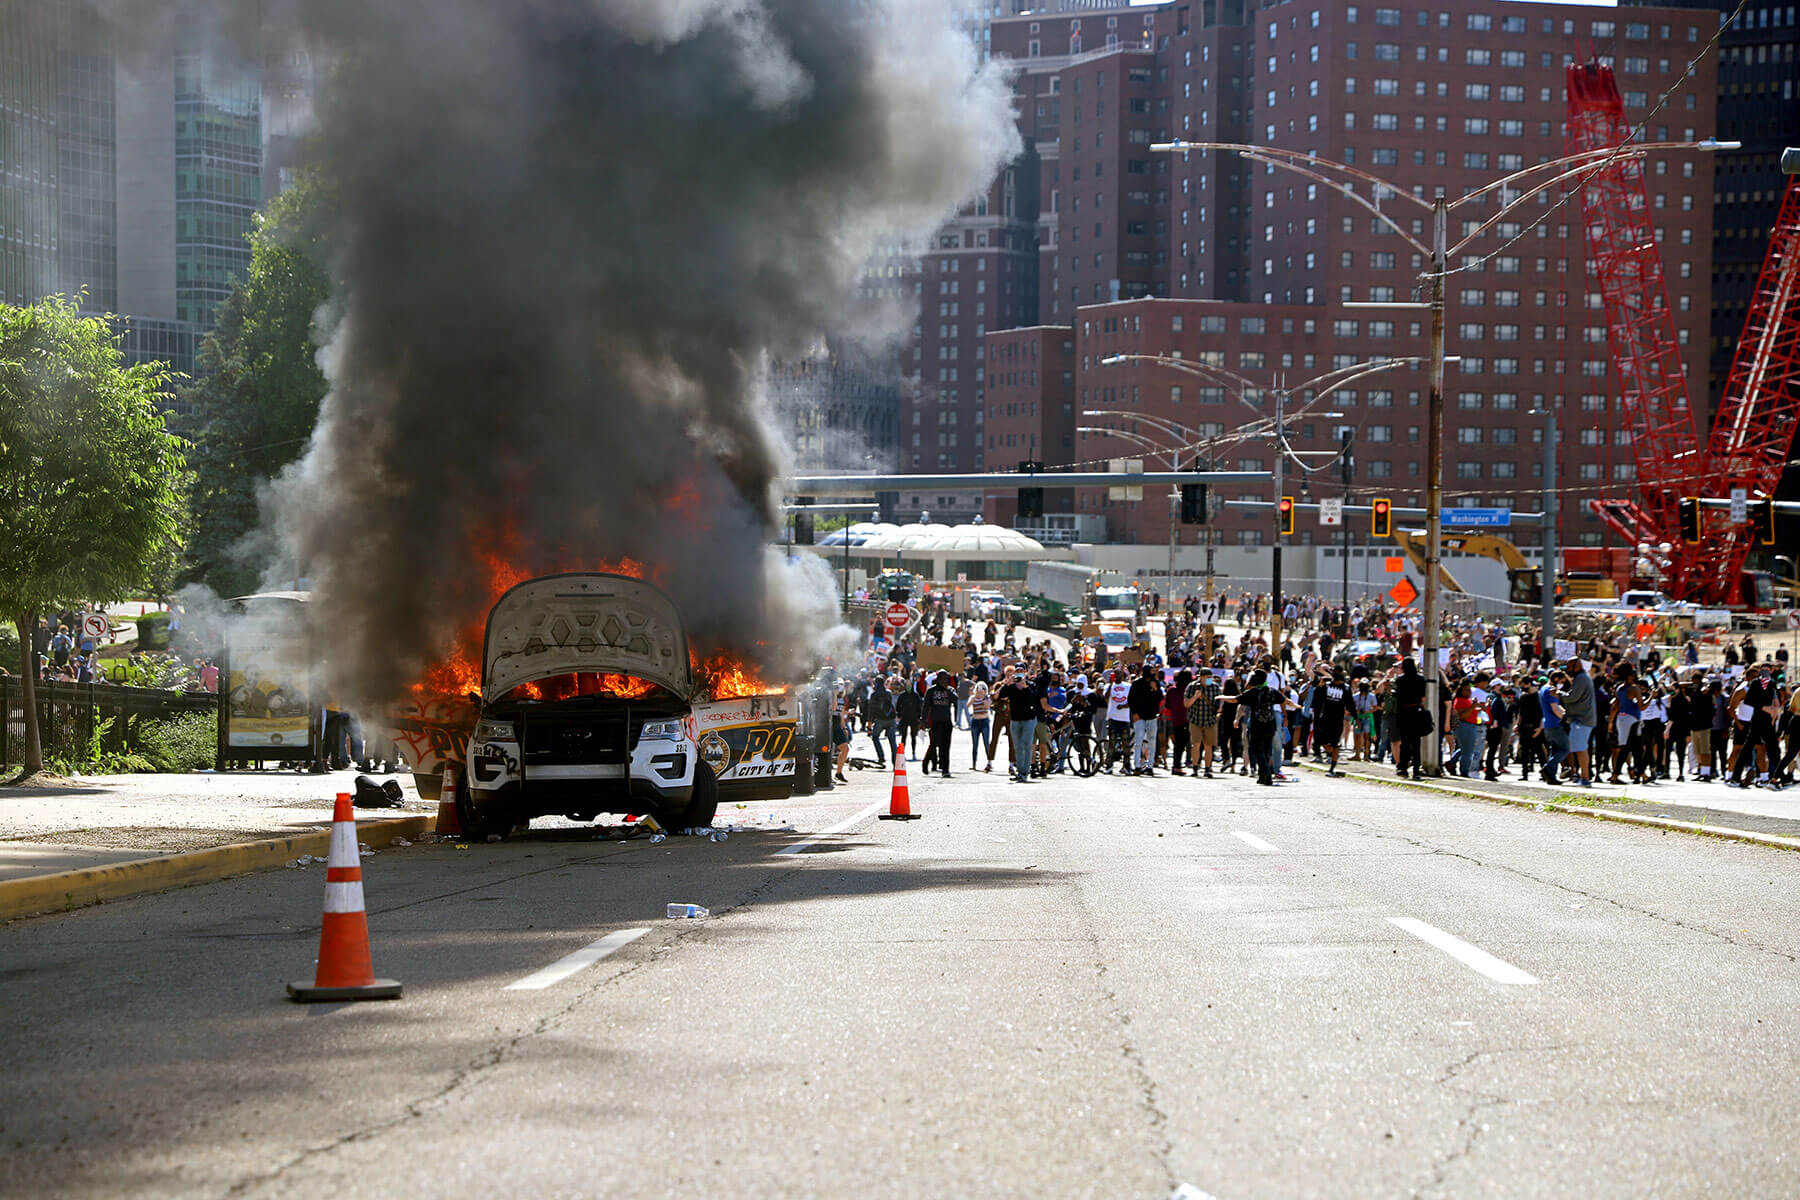 A police car burning on a Pittsburgh street amid a protest.